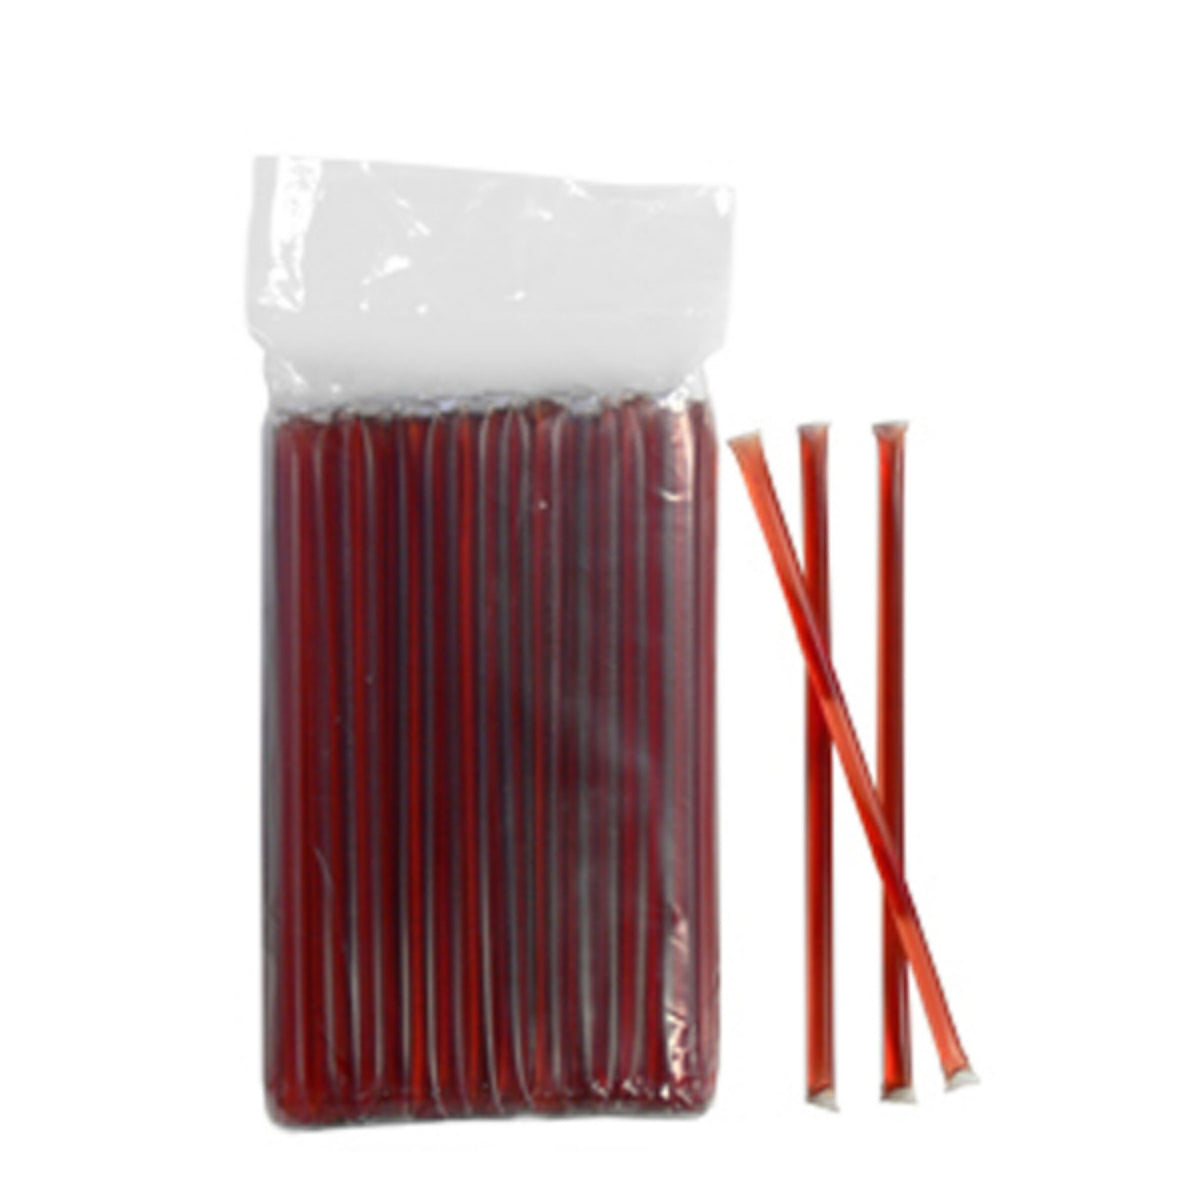 Anna's Sour Raspberry Flavored Honey Sticks in a Large Bulk Pack of 100